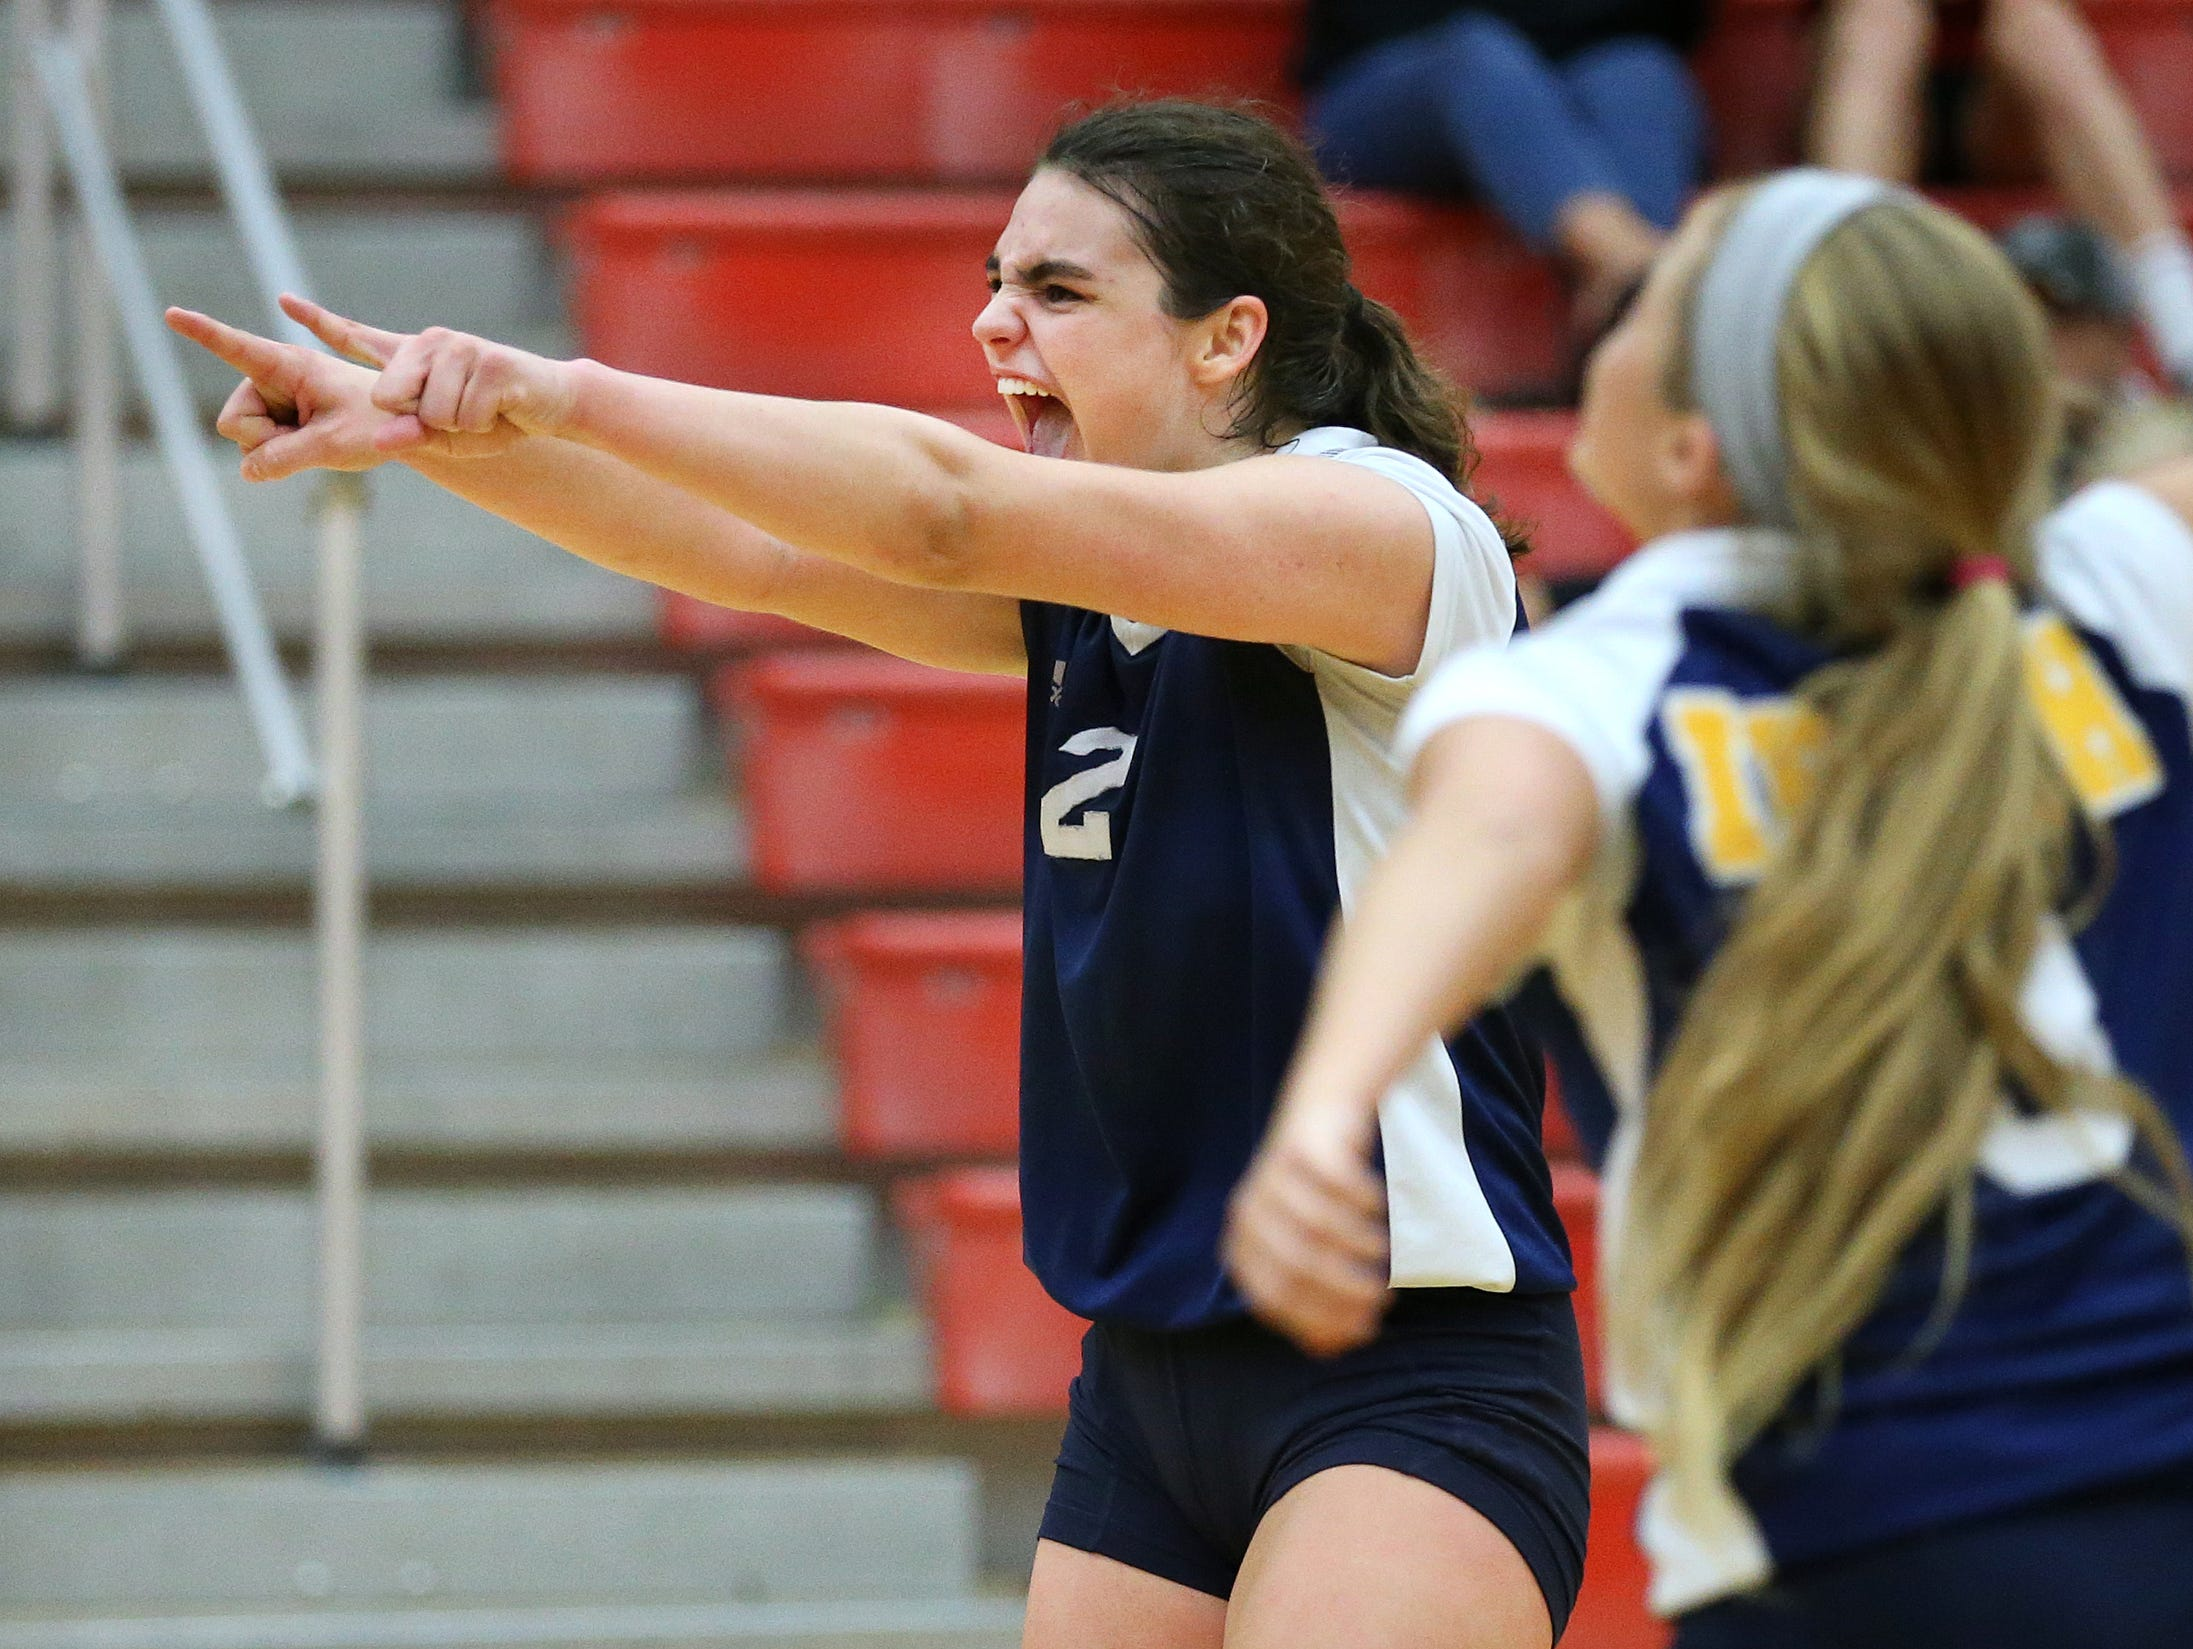 Cathedral's Maria Schorr screams after winning a point against Center Grove during their match, August 25, 2015.